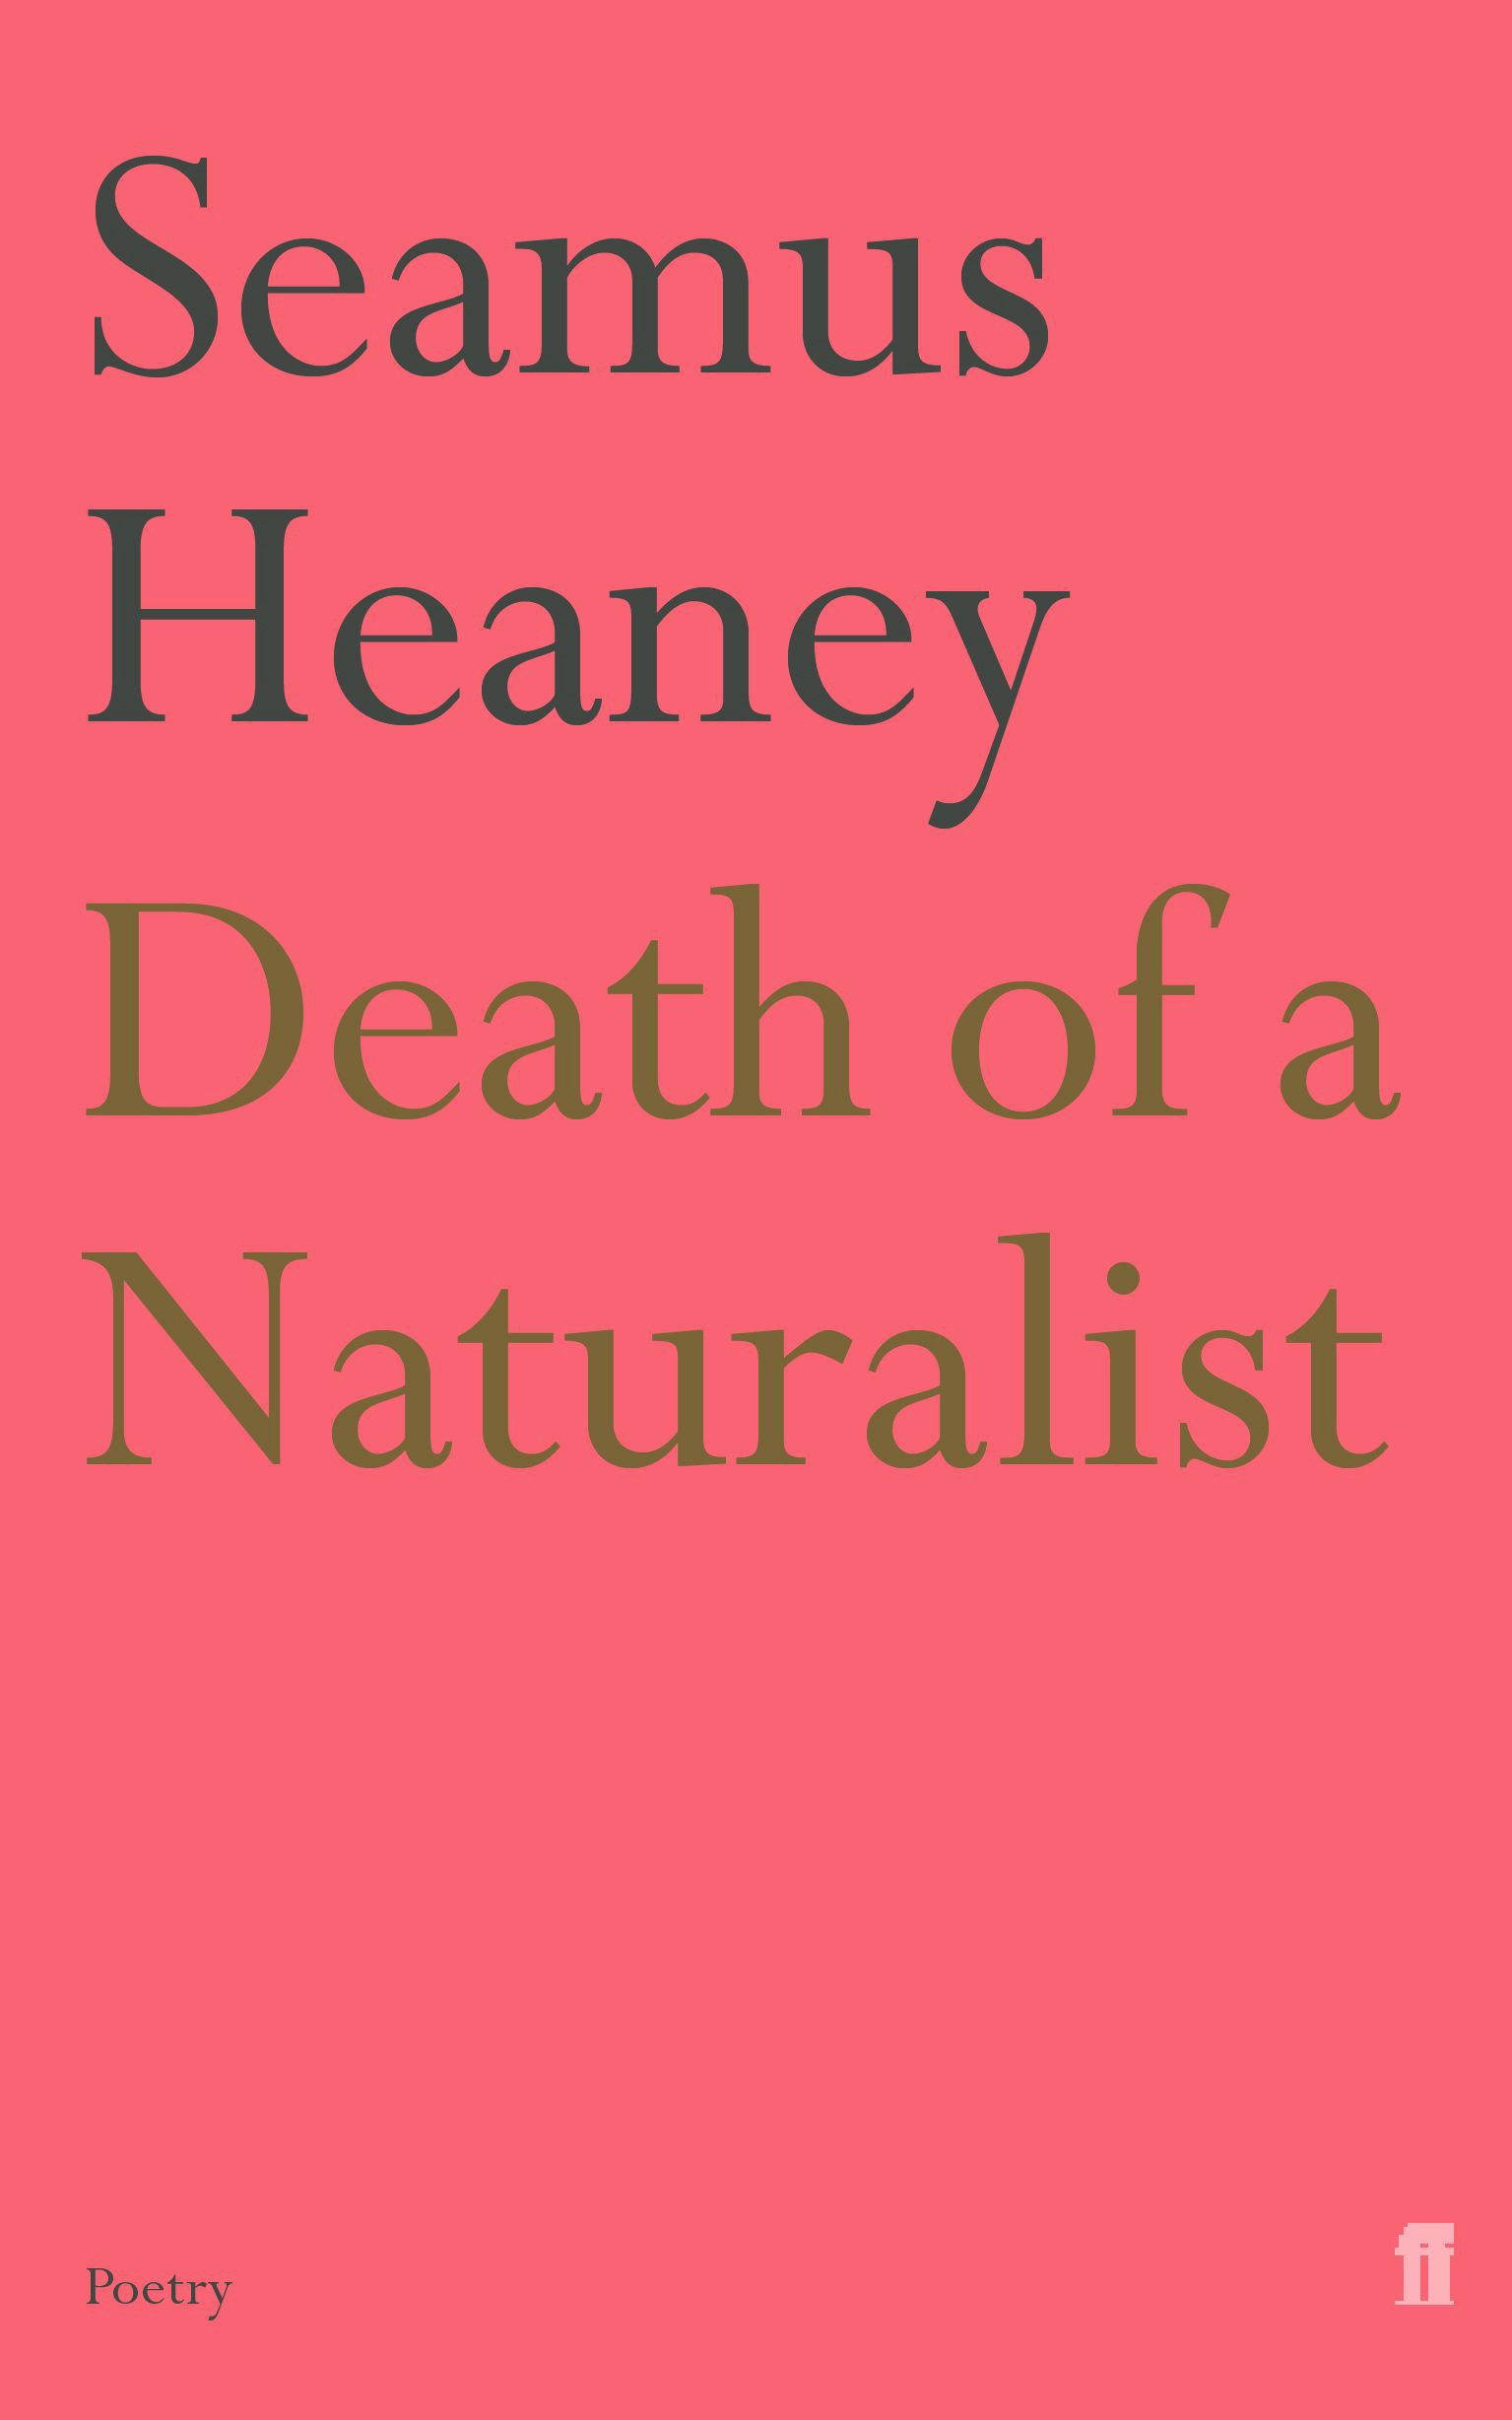 an overview of seamus heaneys poetry collection death of a naturalist